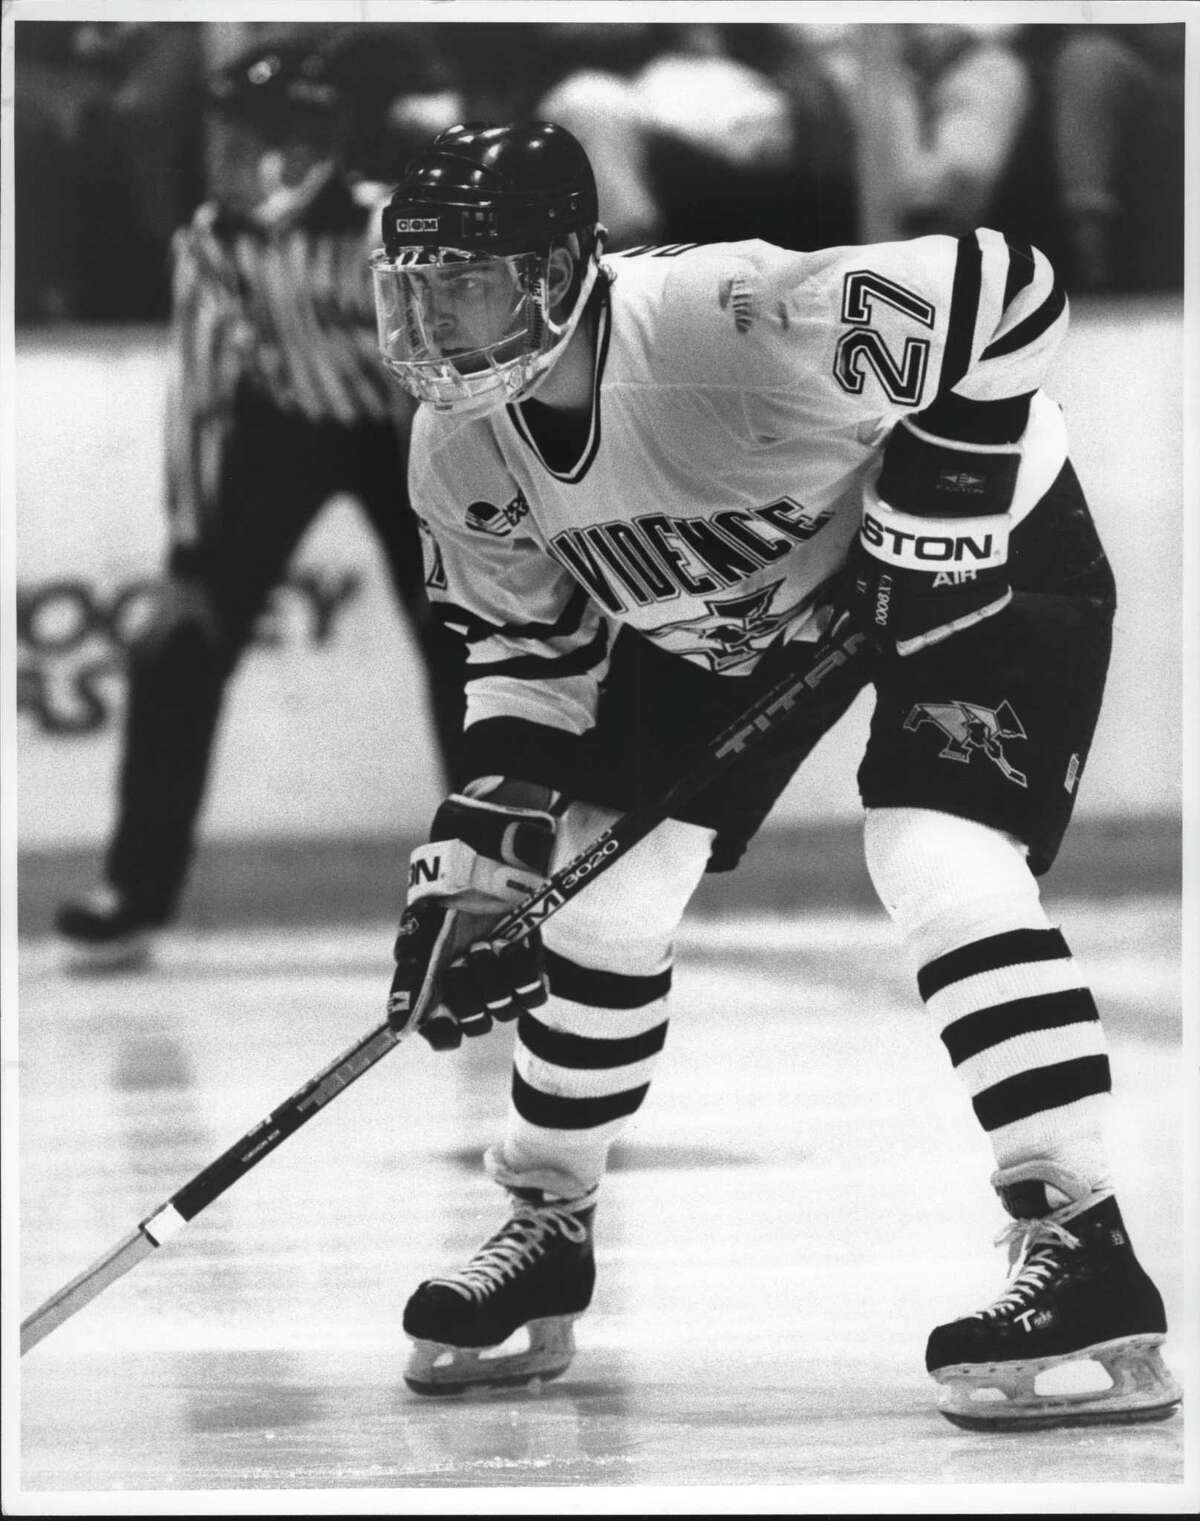 Providence College hockey player Craig Darby. November 01, 1991 (Thomas F. Maguire Jr./Times Union Archive)